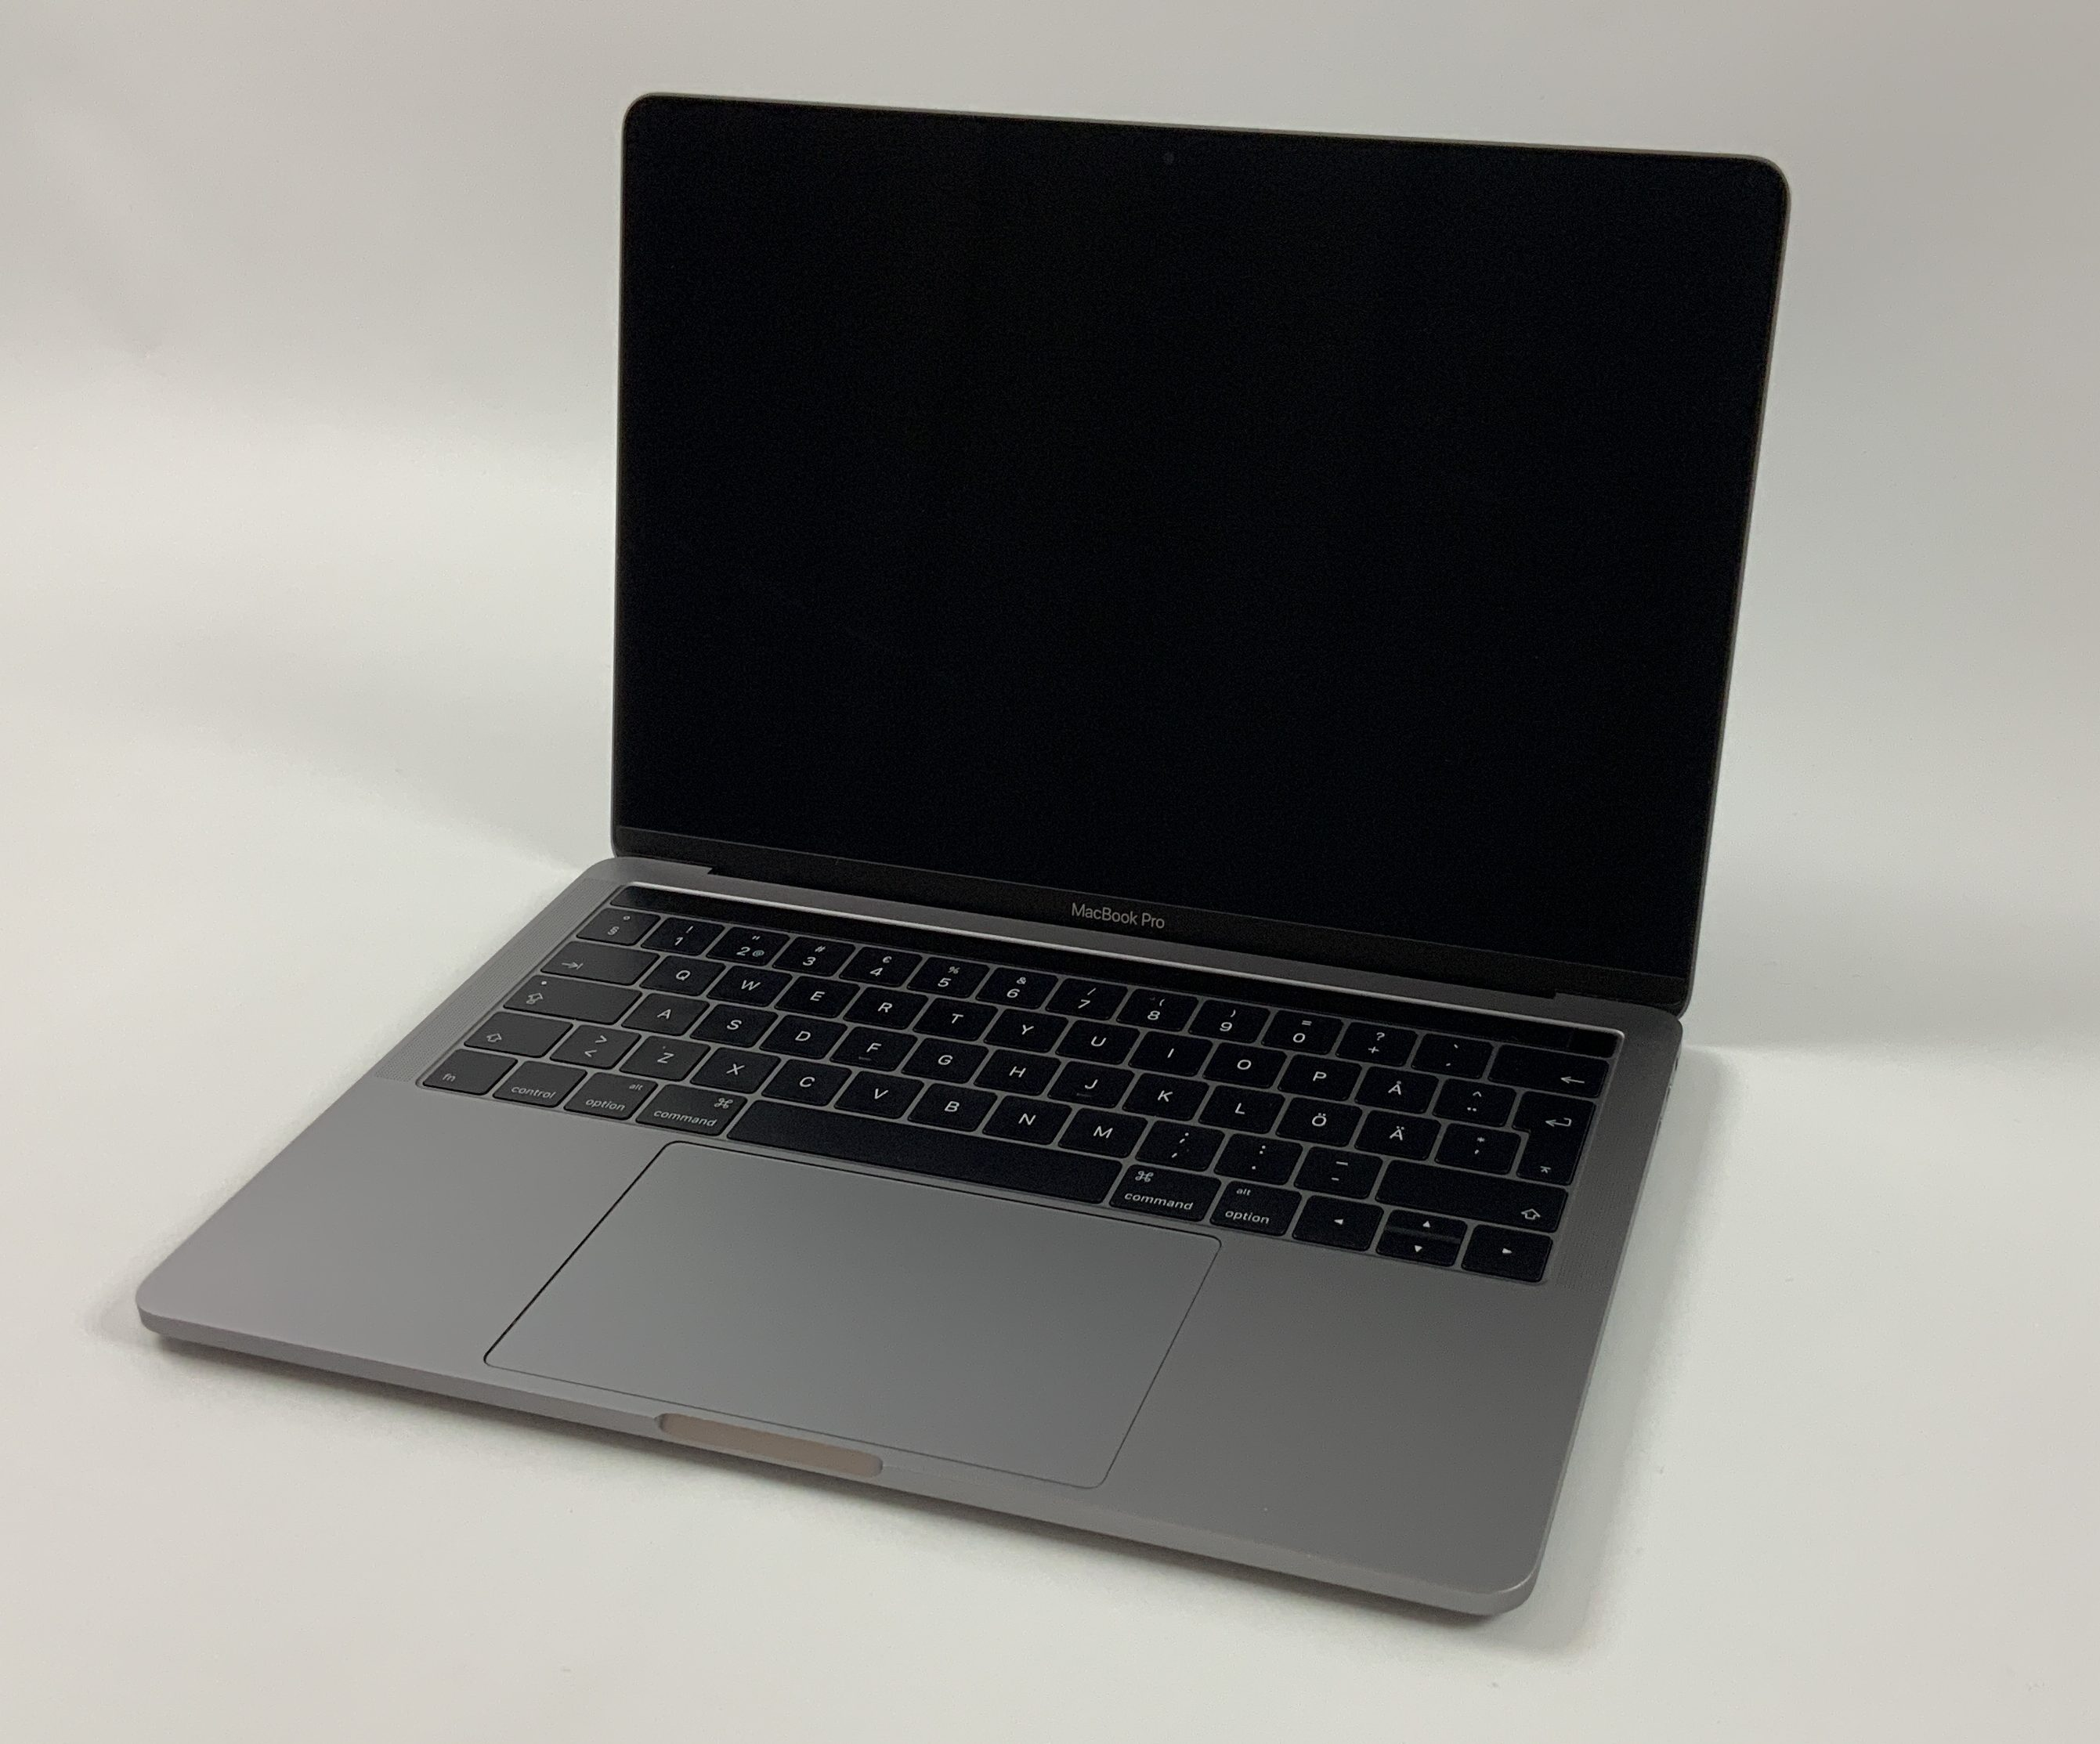 "MacBook Pro 13"" 4TBT Late 2016 (Intel Core i5 2.9 GHz 8 GB RAM 512 GB SSD), Space Gray, Intel Core i5 2.9 GHz, 8 GB RAM, 512 GB SSD, image 1"